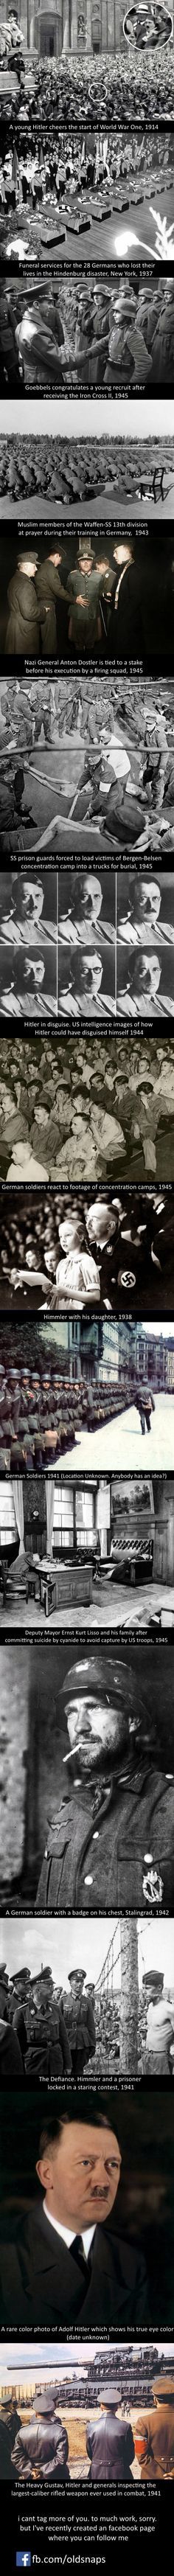 Old snaps you have to see. Part NAZIS. Imagine if he fought to unite people instead of segregation, we would be a peaceful world History Photos, History Facts, History Weird, History Essay, Ww2 History, Old Pictures, Old Photos, Weird Facts, Fun Facts